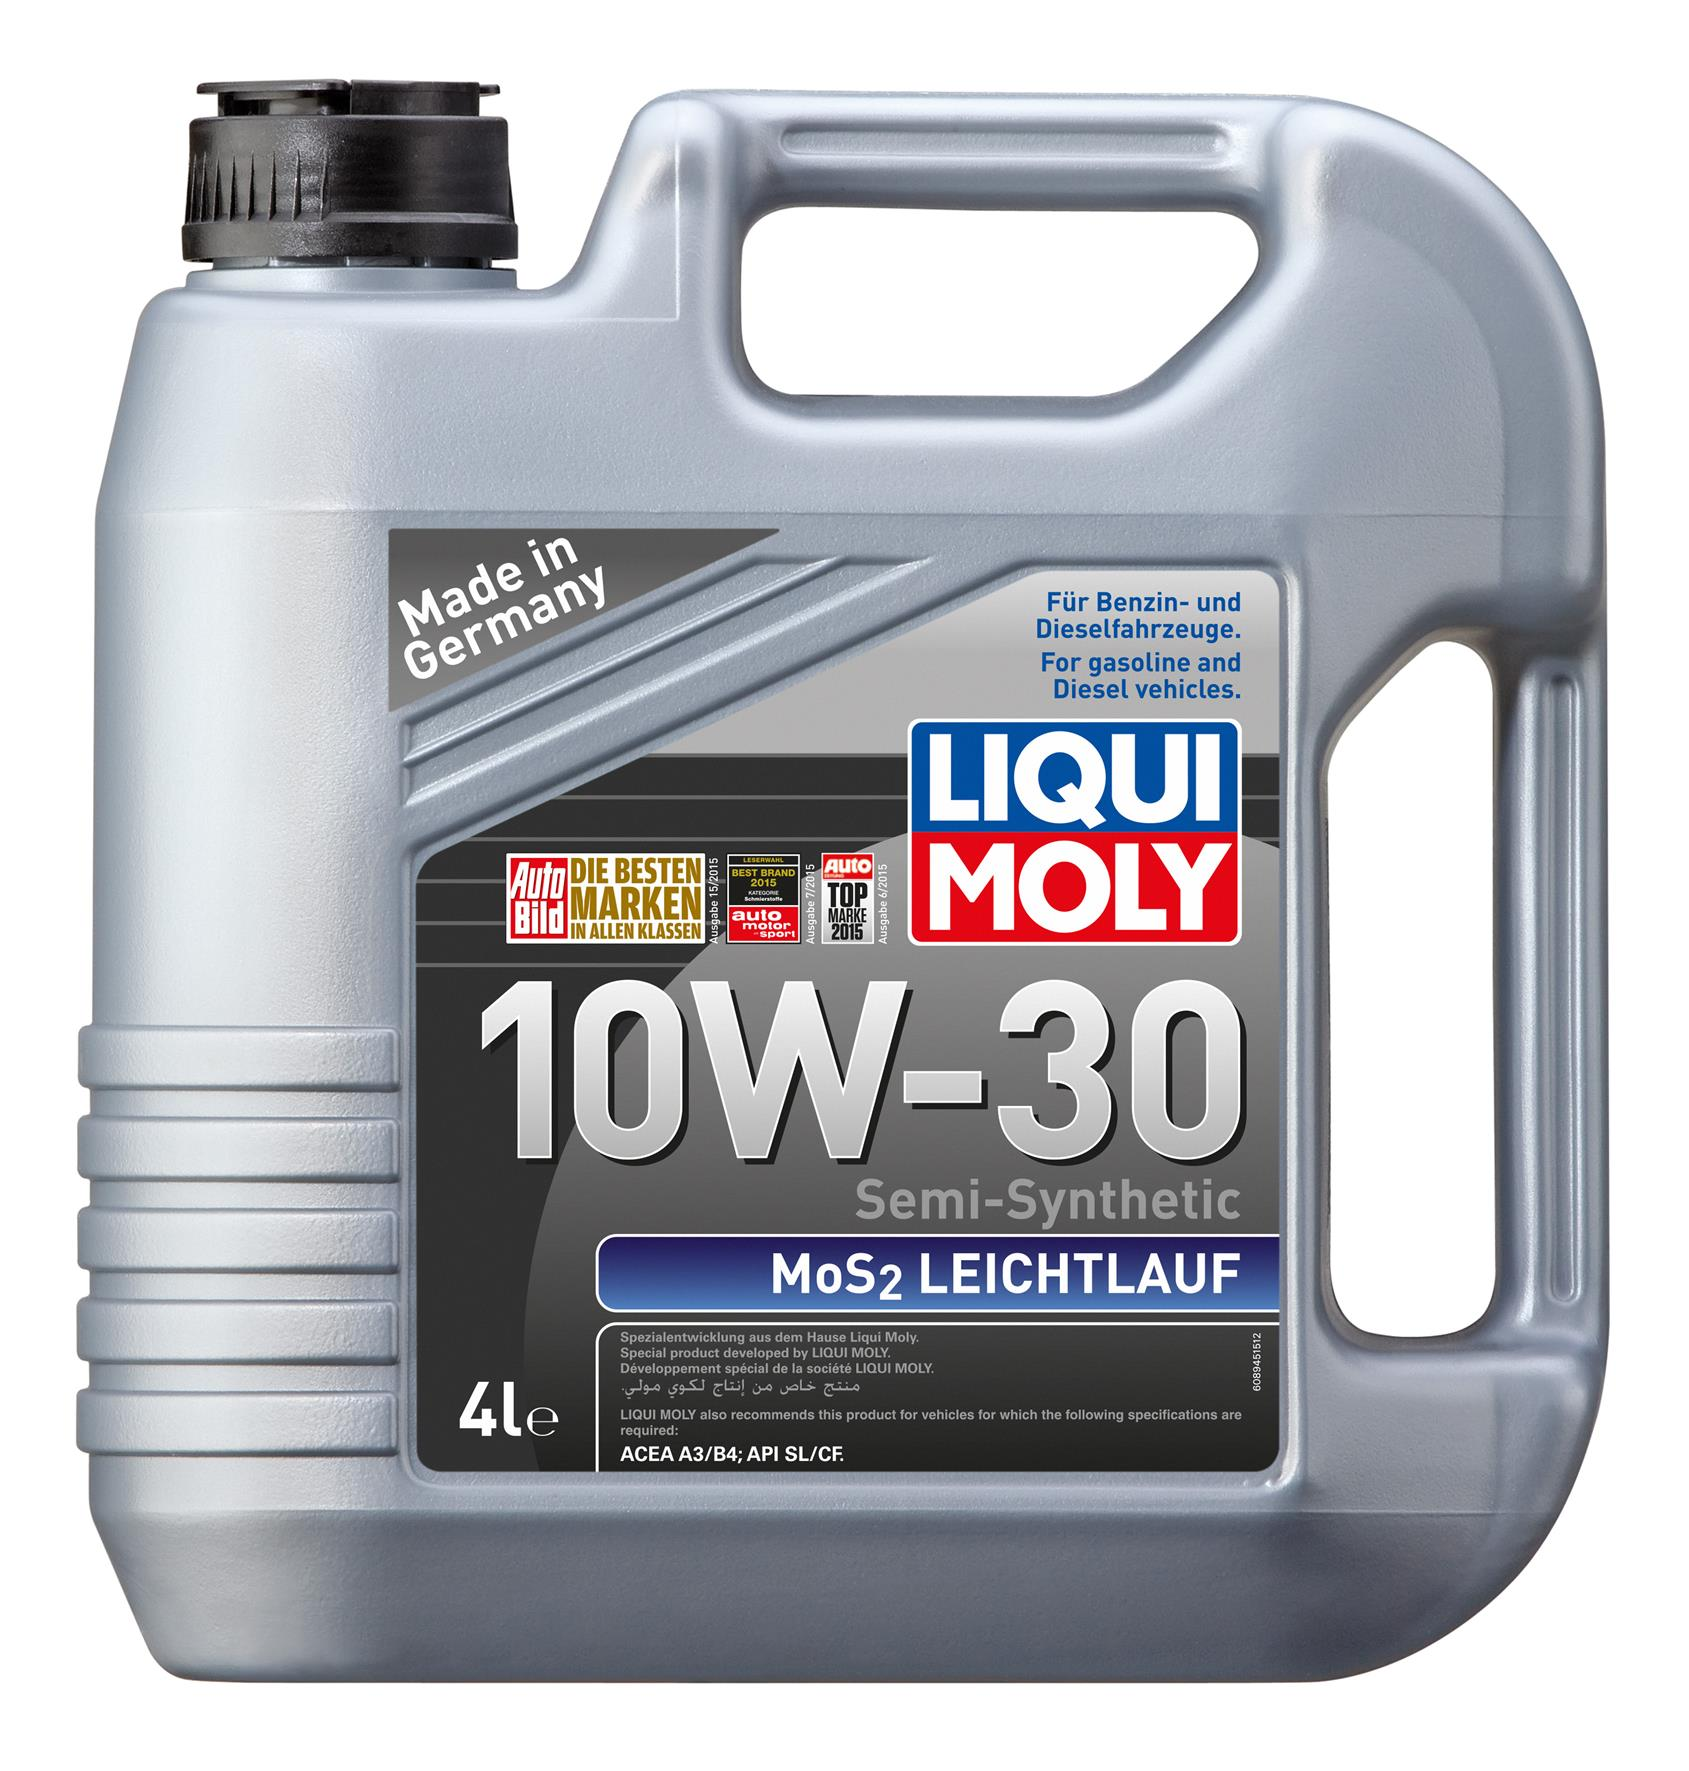 Liqui moly semi synthetic mos2 leic end 12 26 2017 5 15 pm for What type of motor oil for my car